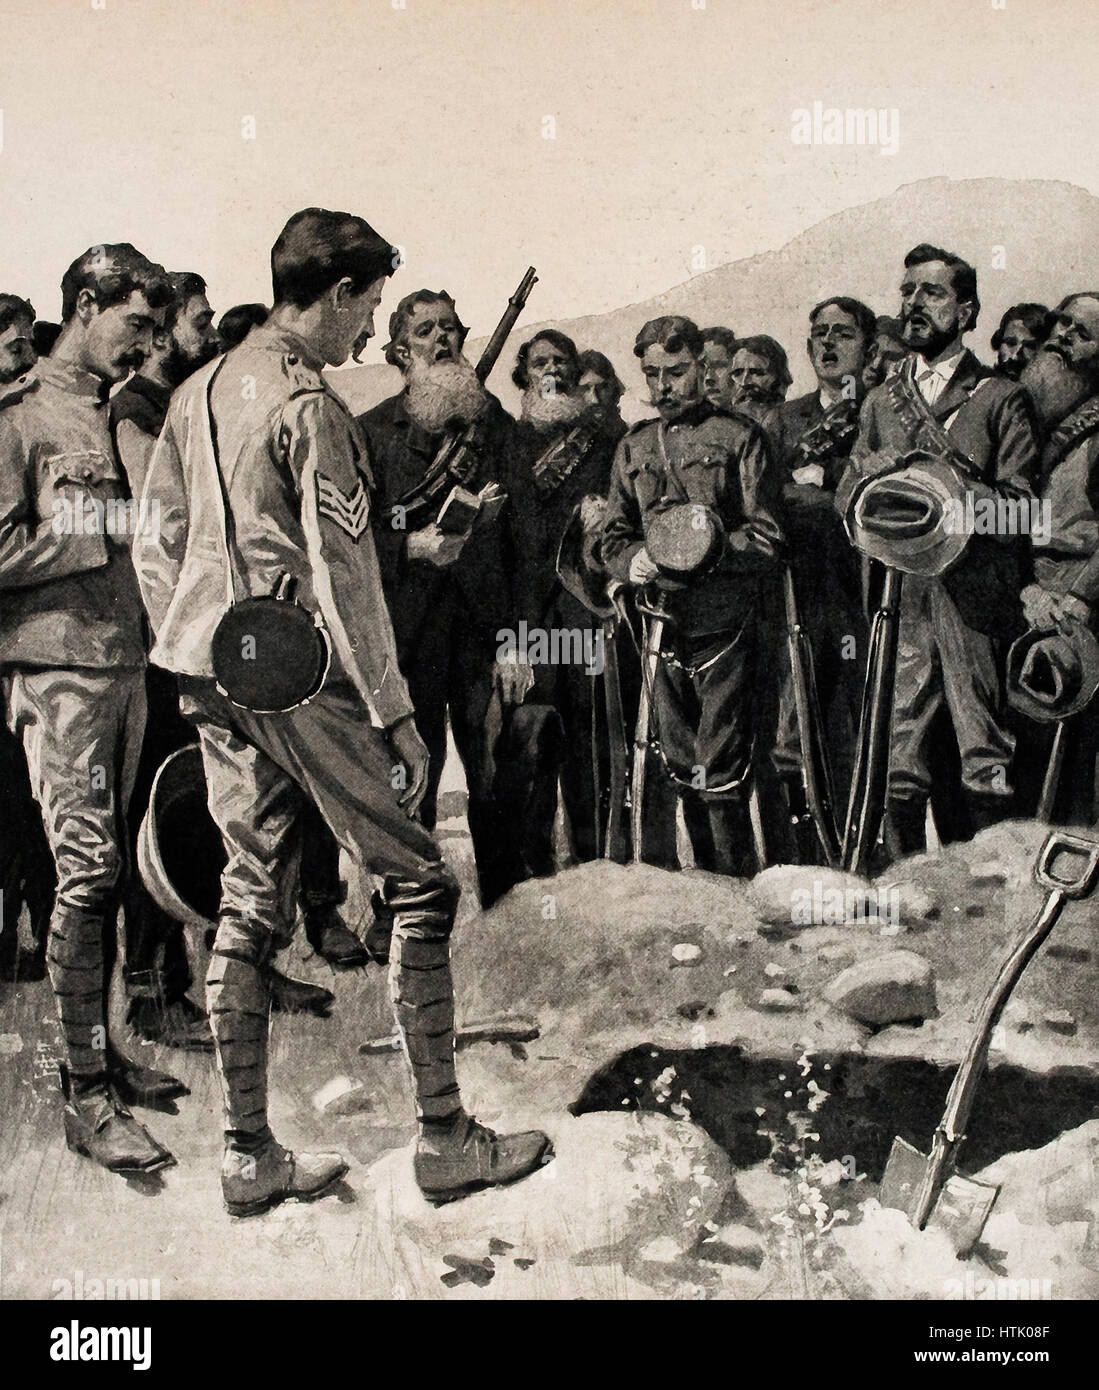 Boers singing psalms over the graves of the British dead during the Boer War, South Africa Stock Photo